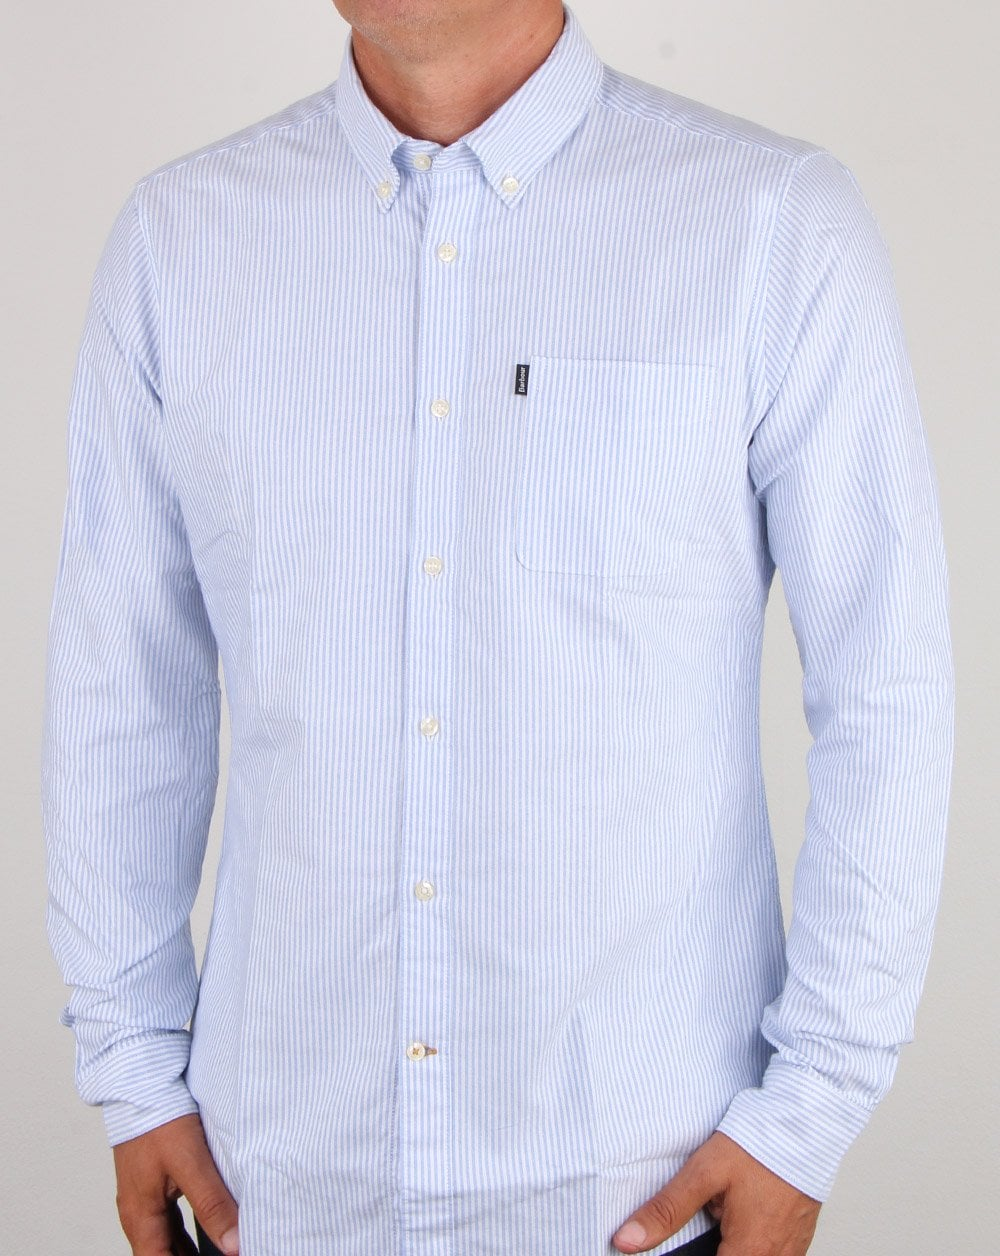 4f92bb874d210 Barbour Barbour Endsleigh Oxford Shirt Sky